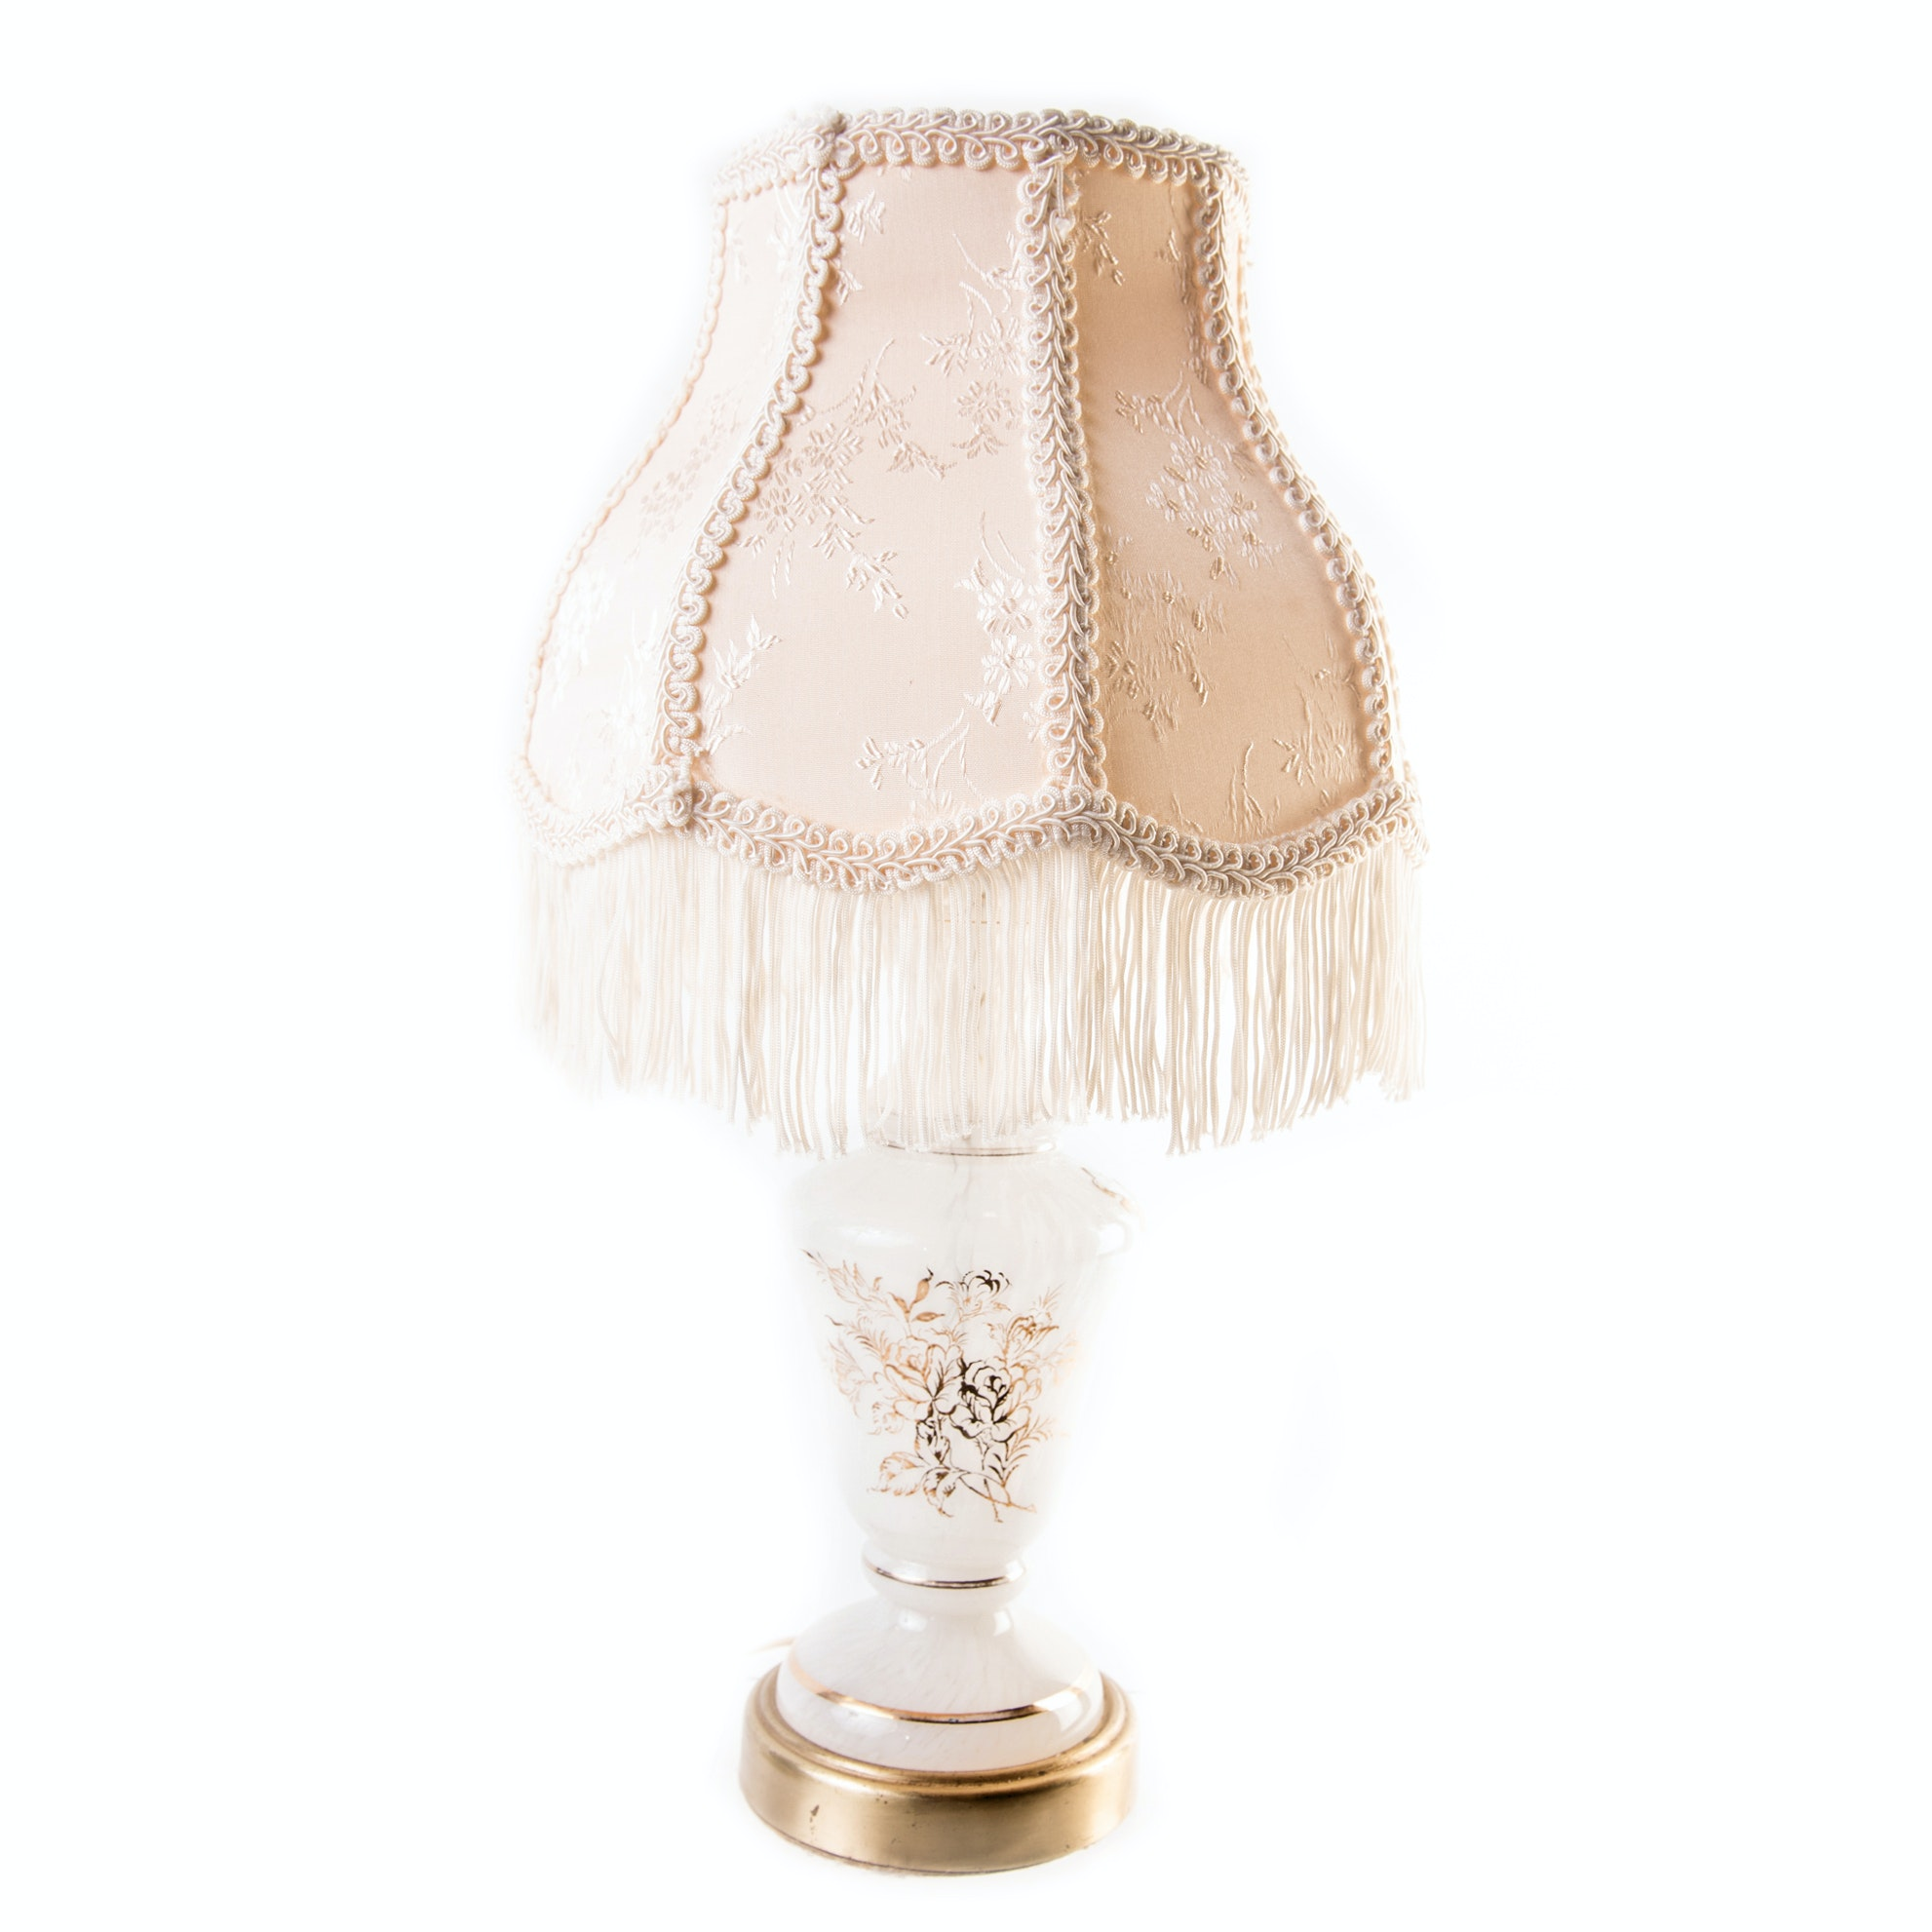 Vintage Petite Blown Glass Lamp with Gold Tone Accents